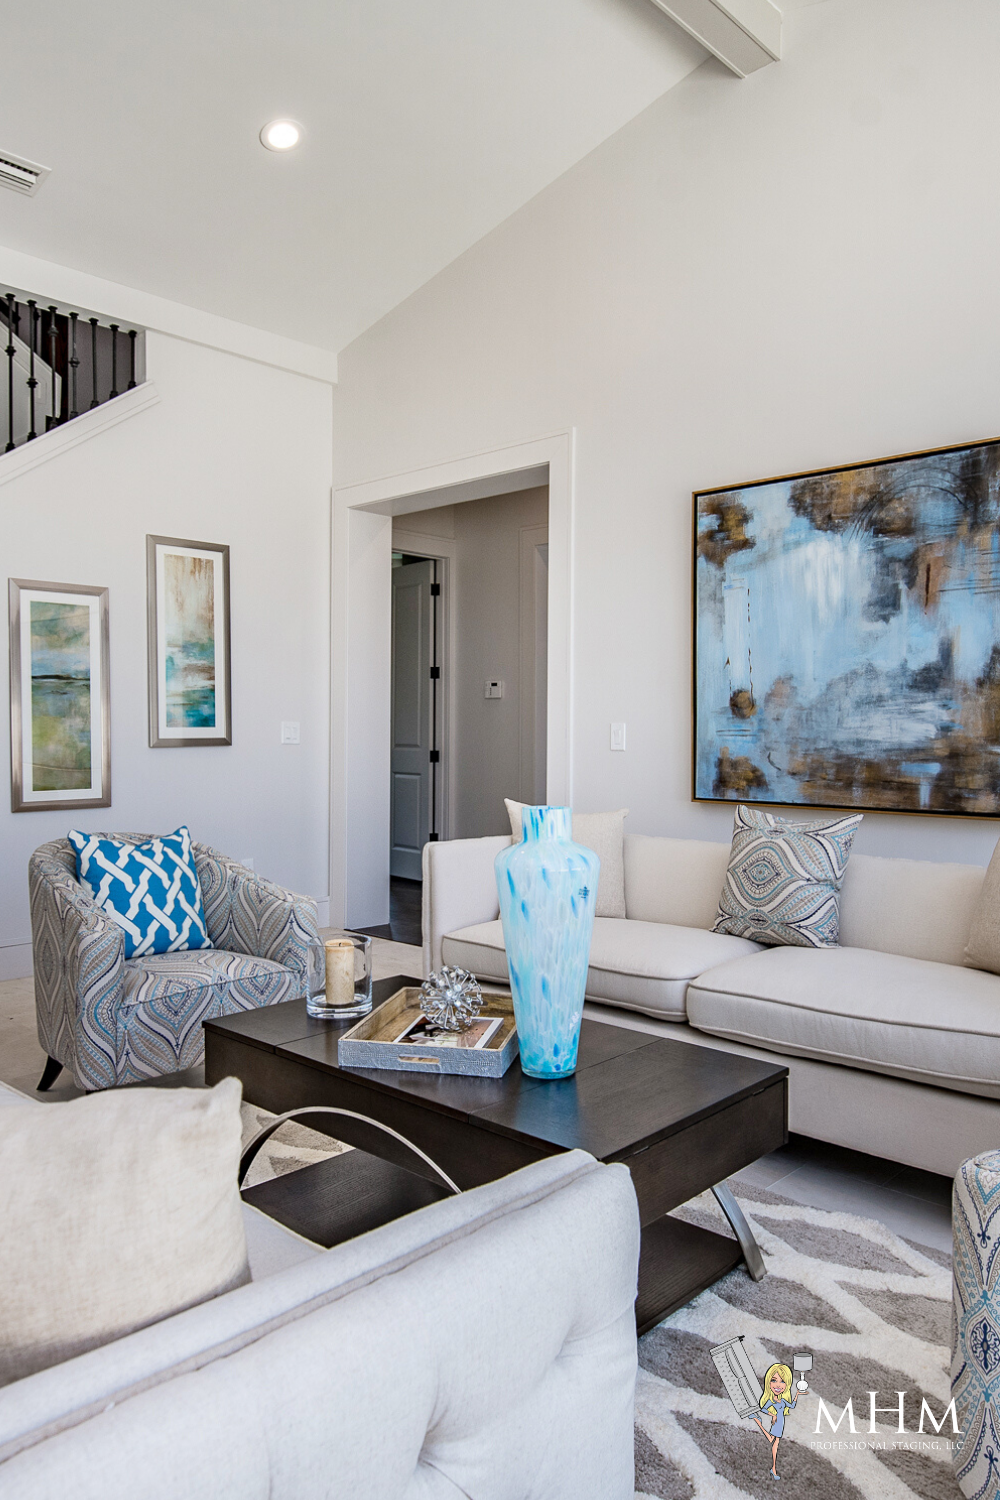 Mhm Professional Staging Orlando Home Staging Company Home Staging Companies Home Staging Home